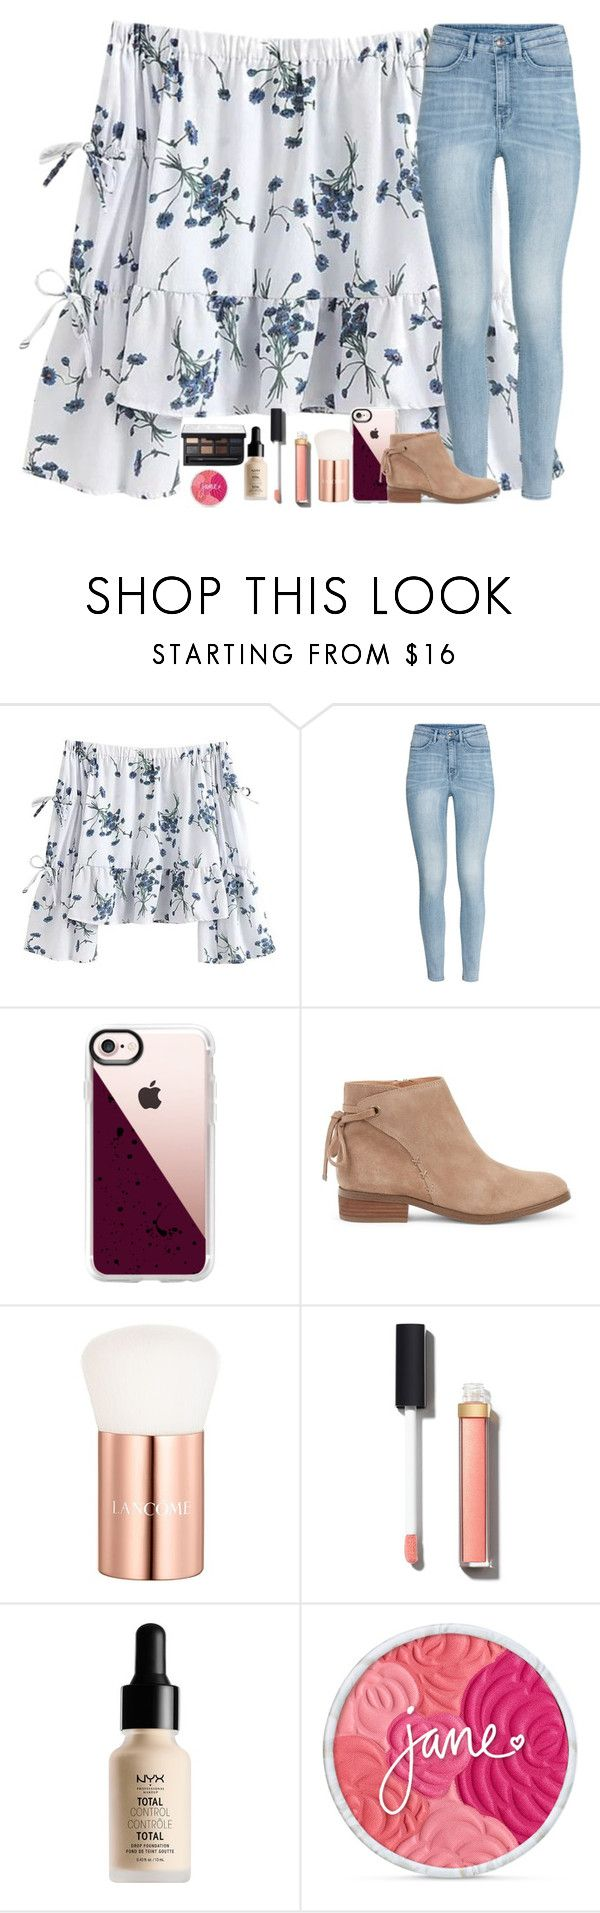 """""""kindness is better"""" by classyandsassyabby ❤ liked on Polyvore featuring H&M, Casetify, Sole Society, Lancôme, Chanel and NYX"""